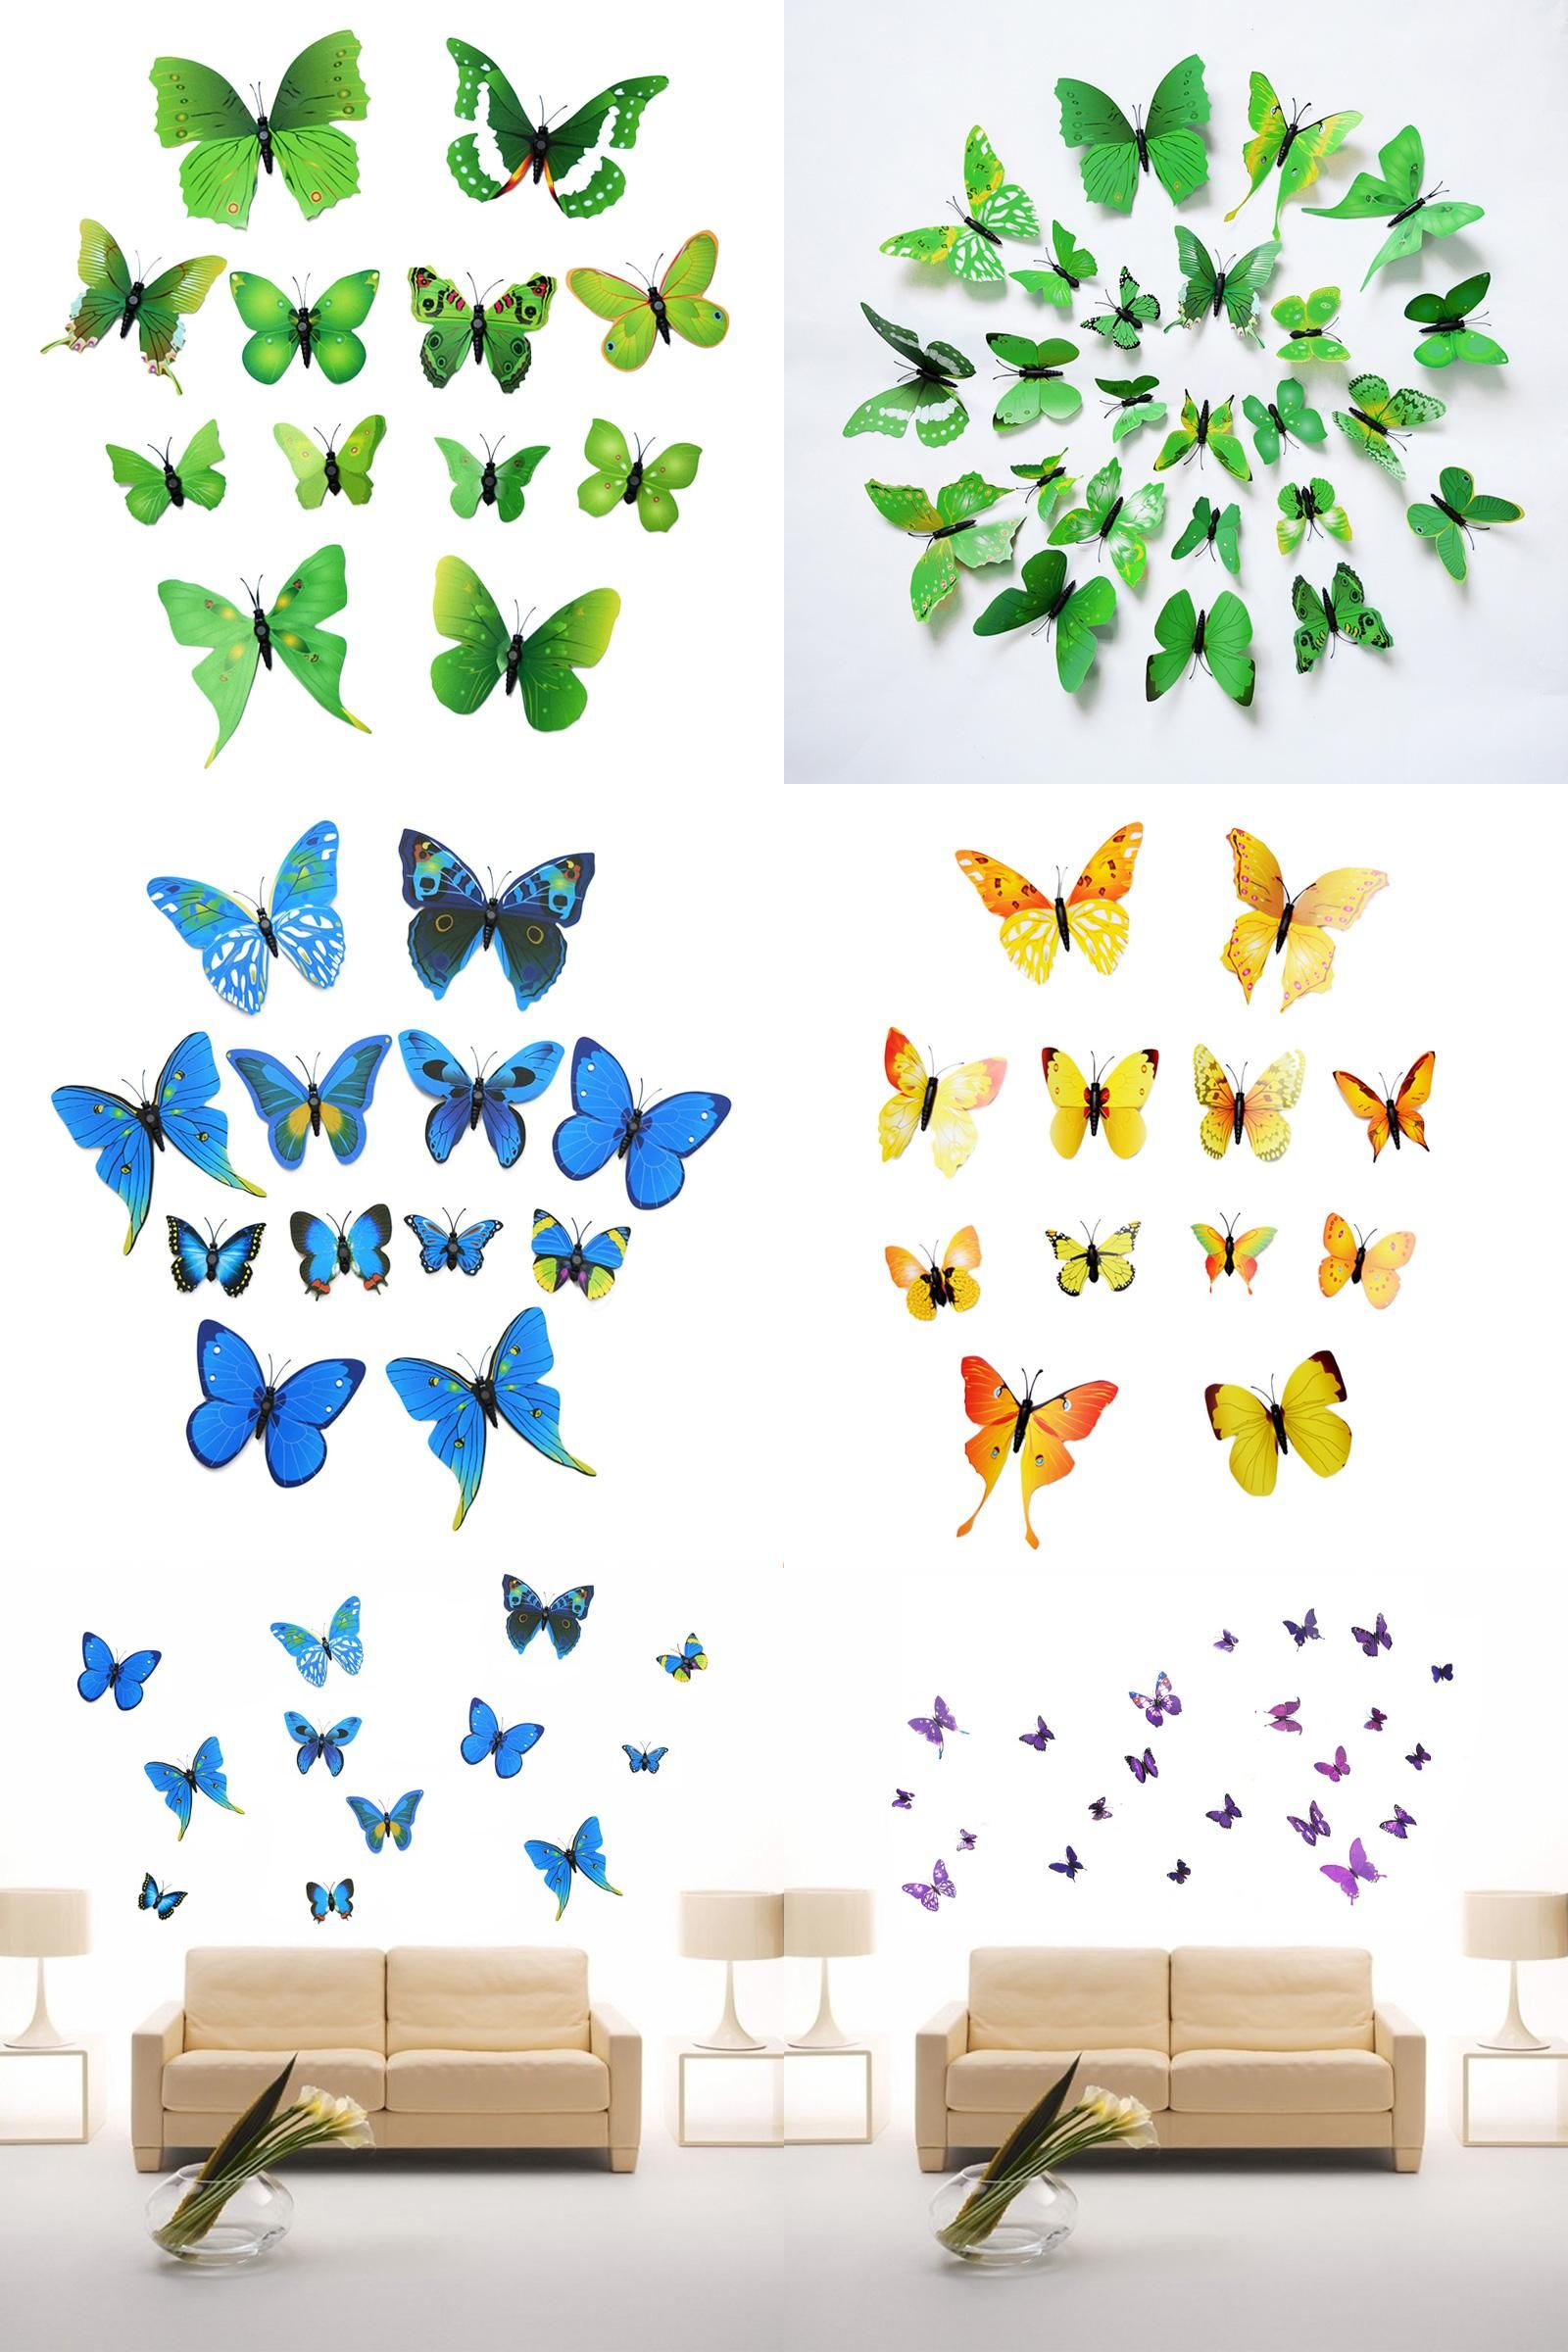 Visit To Buy 12Pcs Lot 3D PVC Magnet Butterflies Sticker DIY Wallpaper Stickers